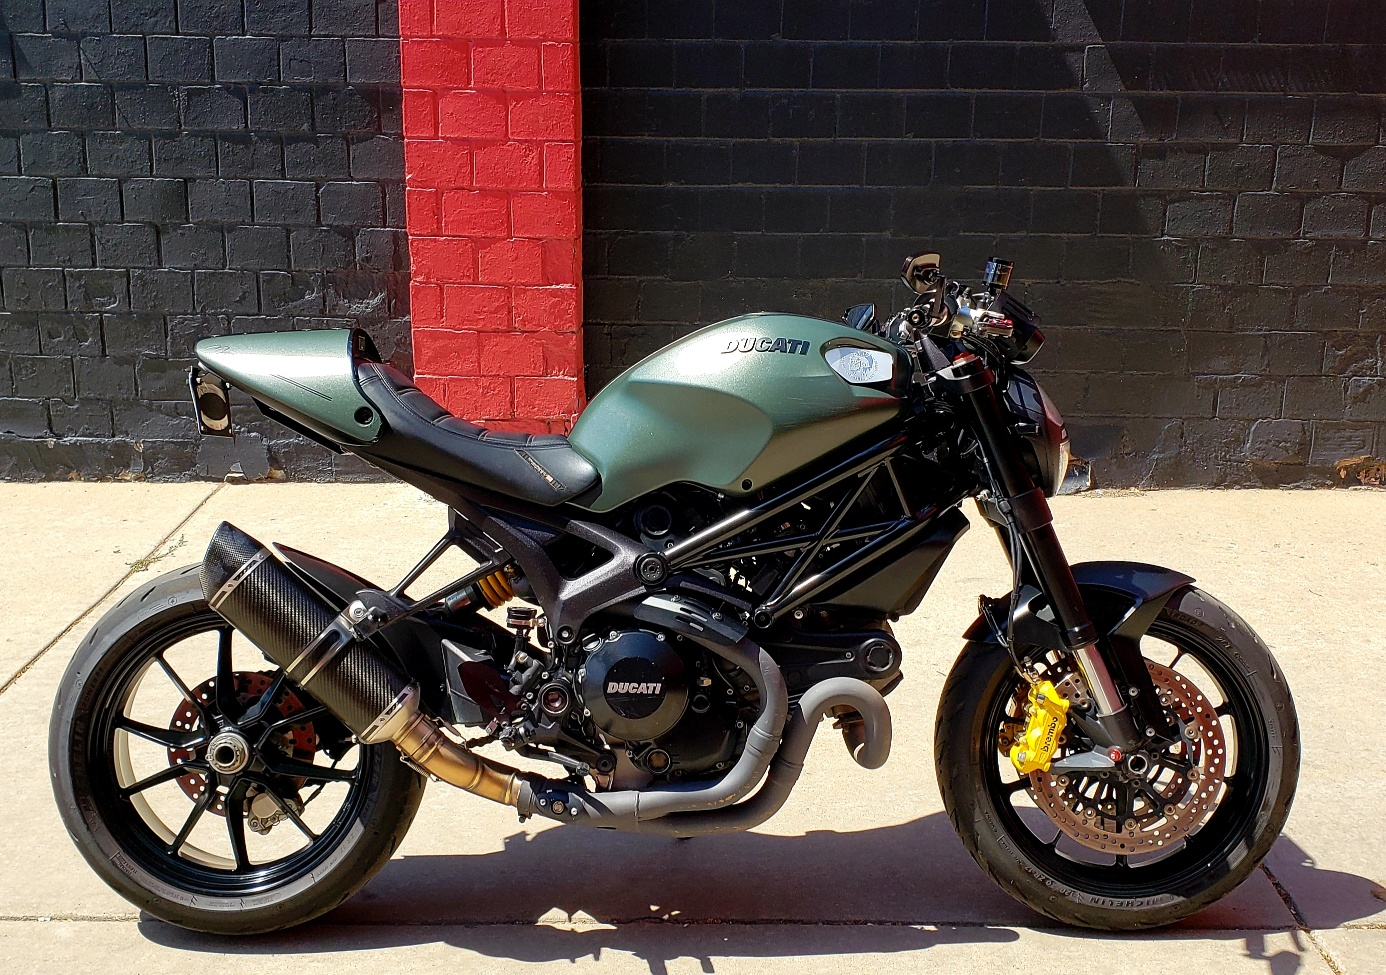 Pre-Owned 2013 DUCATI MONSTER 1100 EVO Diesel Special Edition